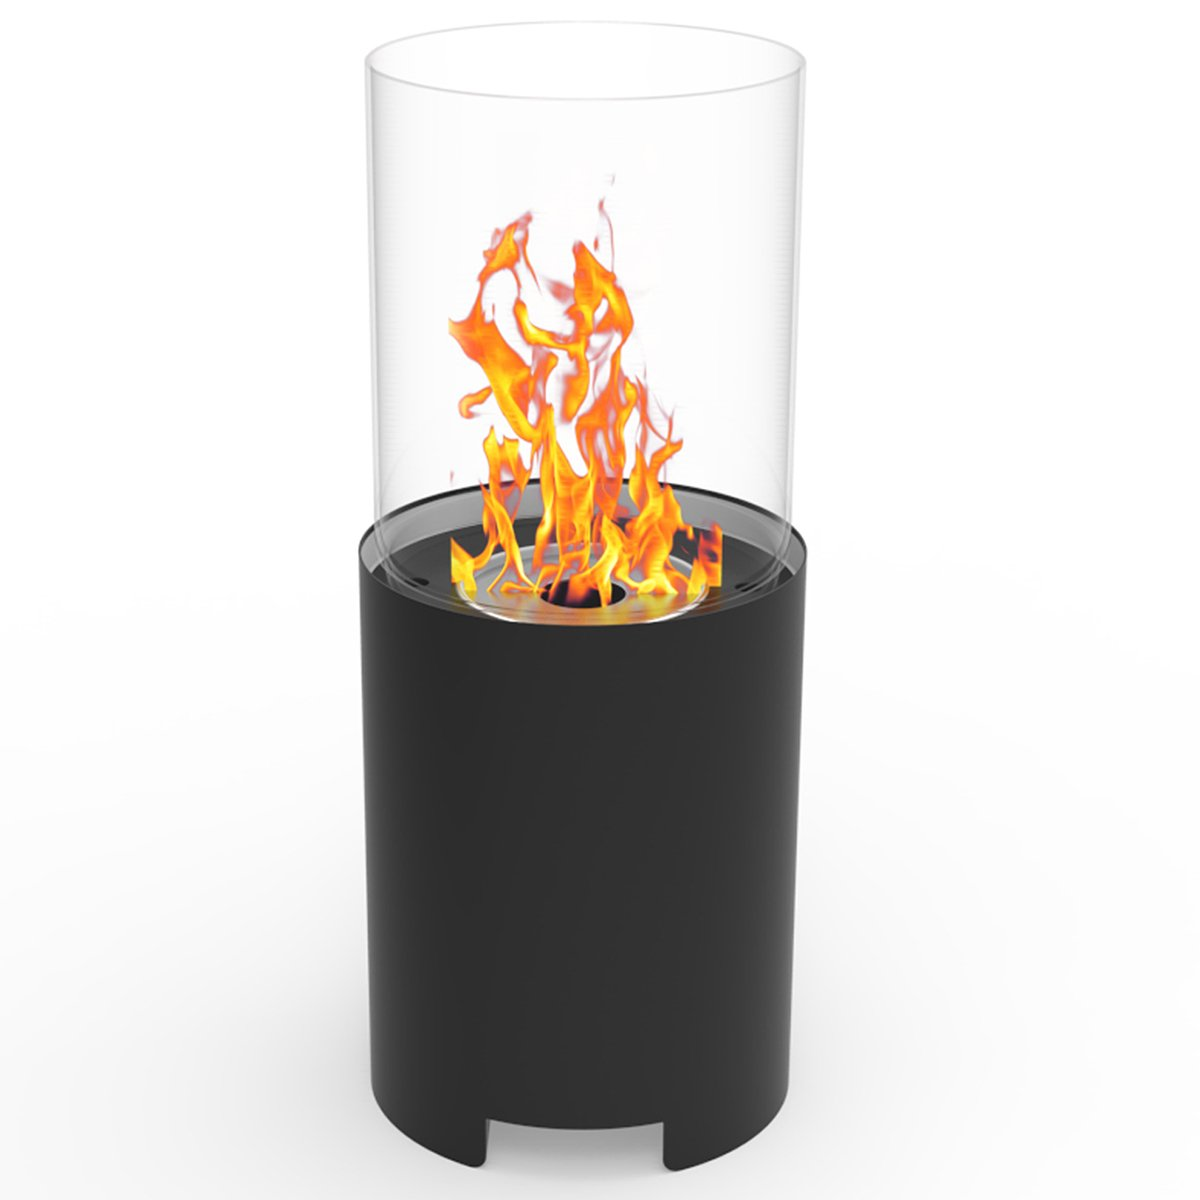 Regal Flame Capelli Ventless Indoor Outdoor Fire Pit Tabletop Portable Fire Bowl Pot Bio Ethanol Fireplace in Black - Realistic Clean Burning like Gel Fireplaces, or Propane Firepits by Regal Flame